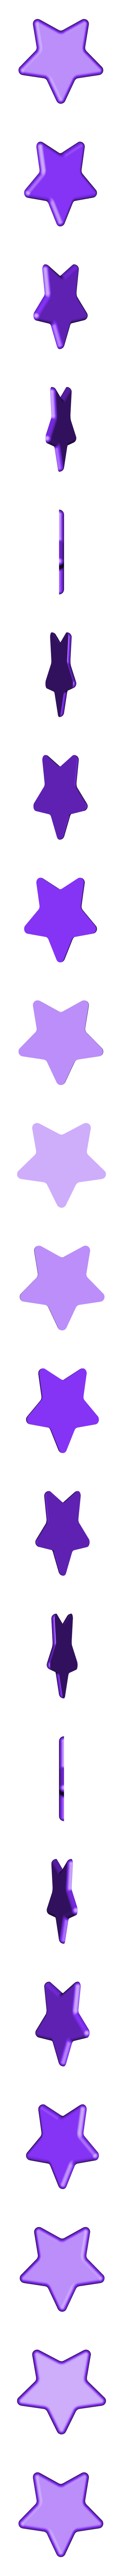 Space Decals_ Small Classic Star.stl Download free STL file Space Decals • 3D printing template, Hom3d